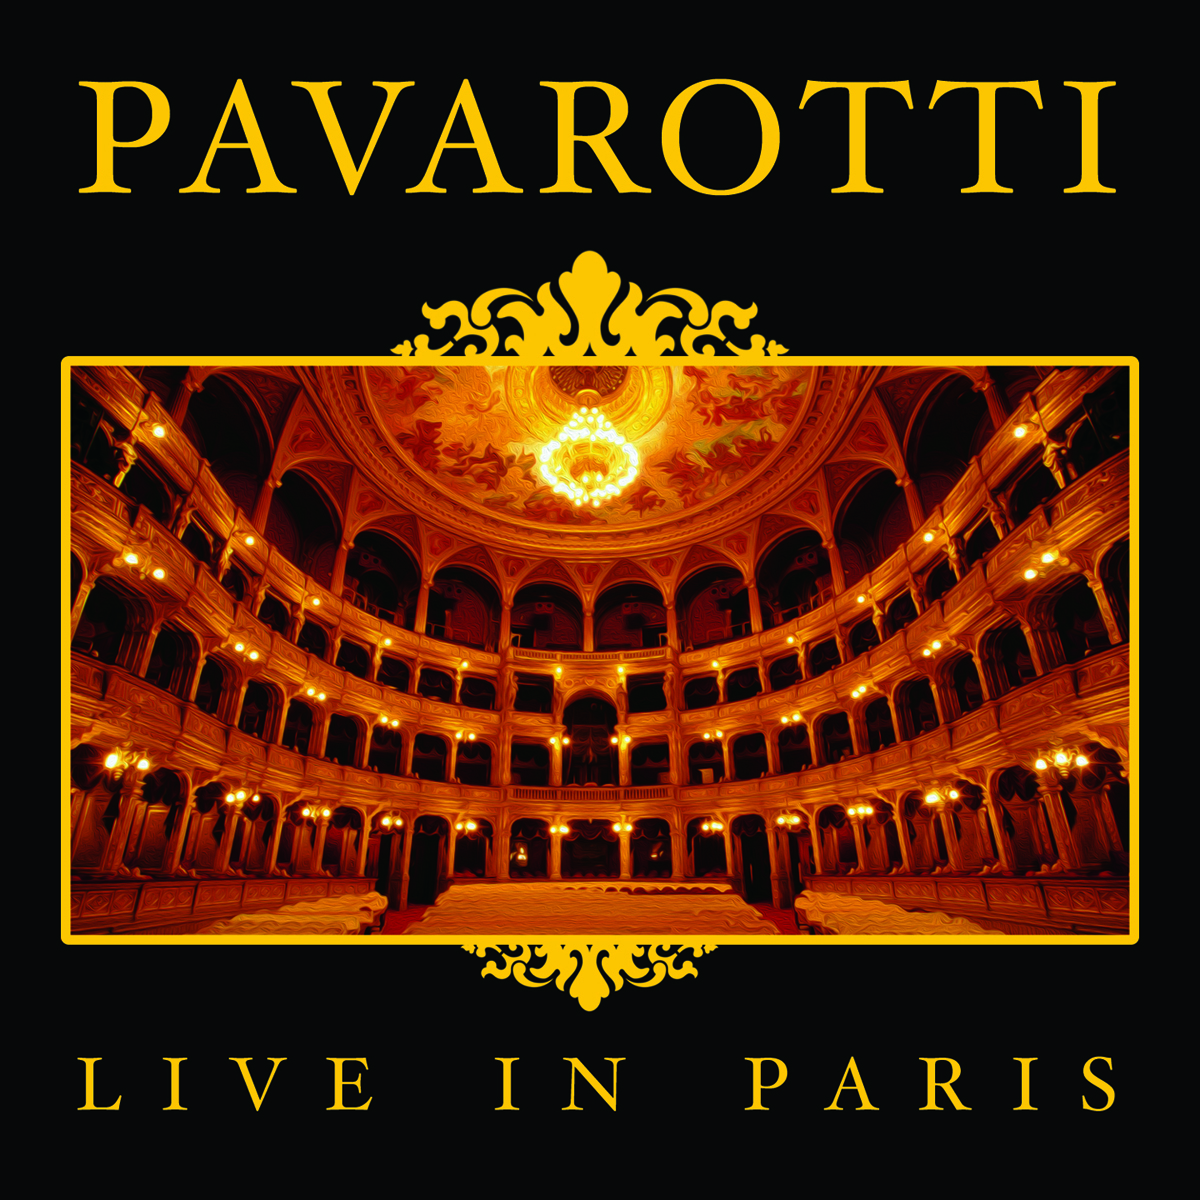 THE BEST OF PAVAROTTI - LIVE IN PARIS